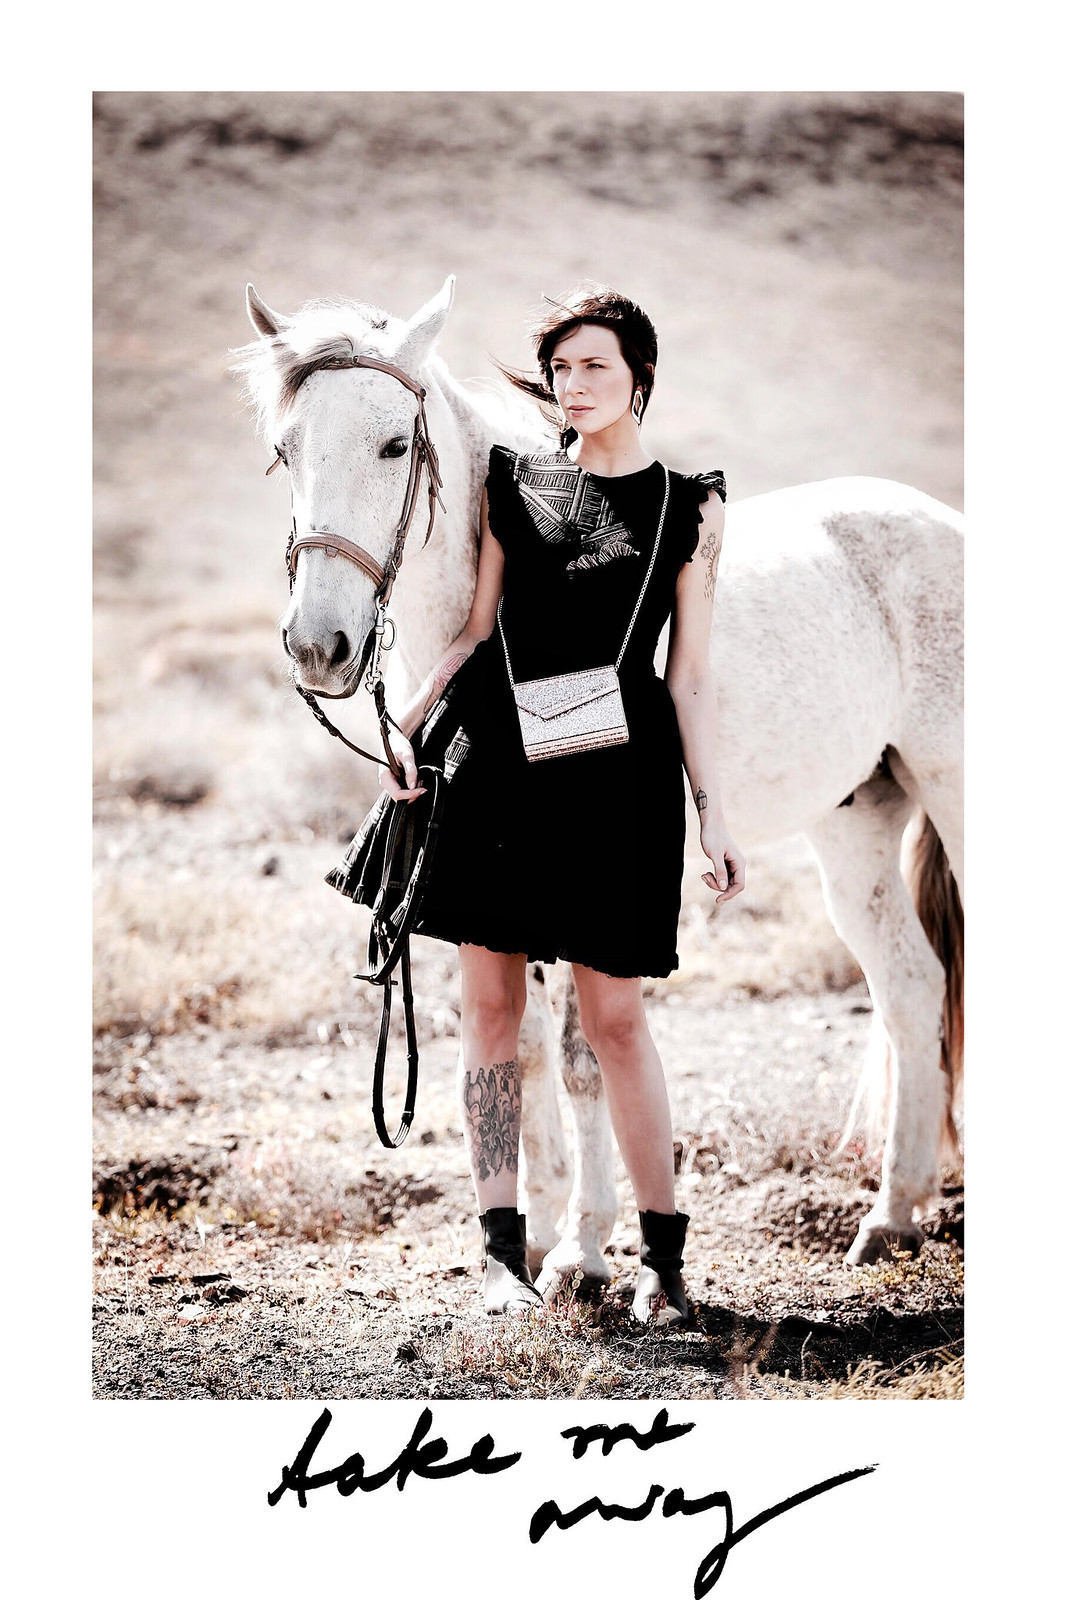 horse white desert jimmy choo glitter bag maje black cocktail dress cowgirl riding adventure freedom outfit ootd modeblogger breuninger fashionblog cats & dogs ricarda schernus düsseldorf 4